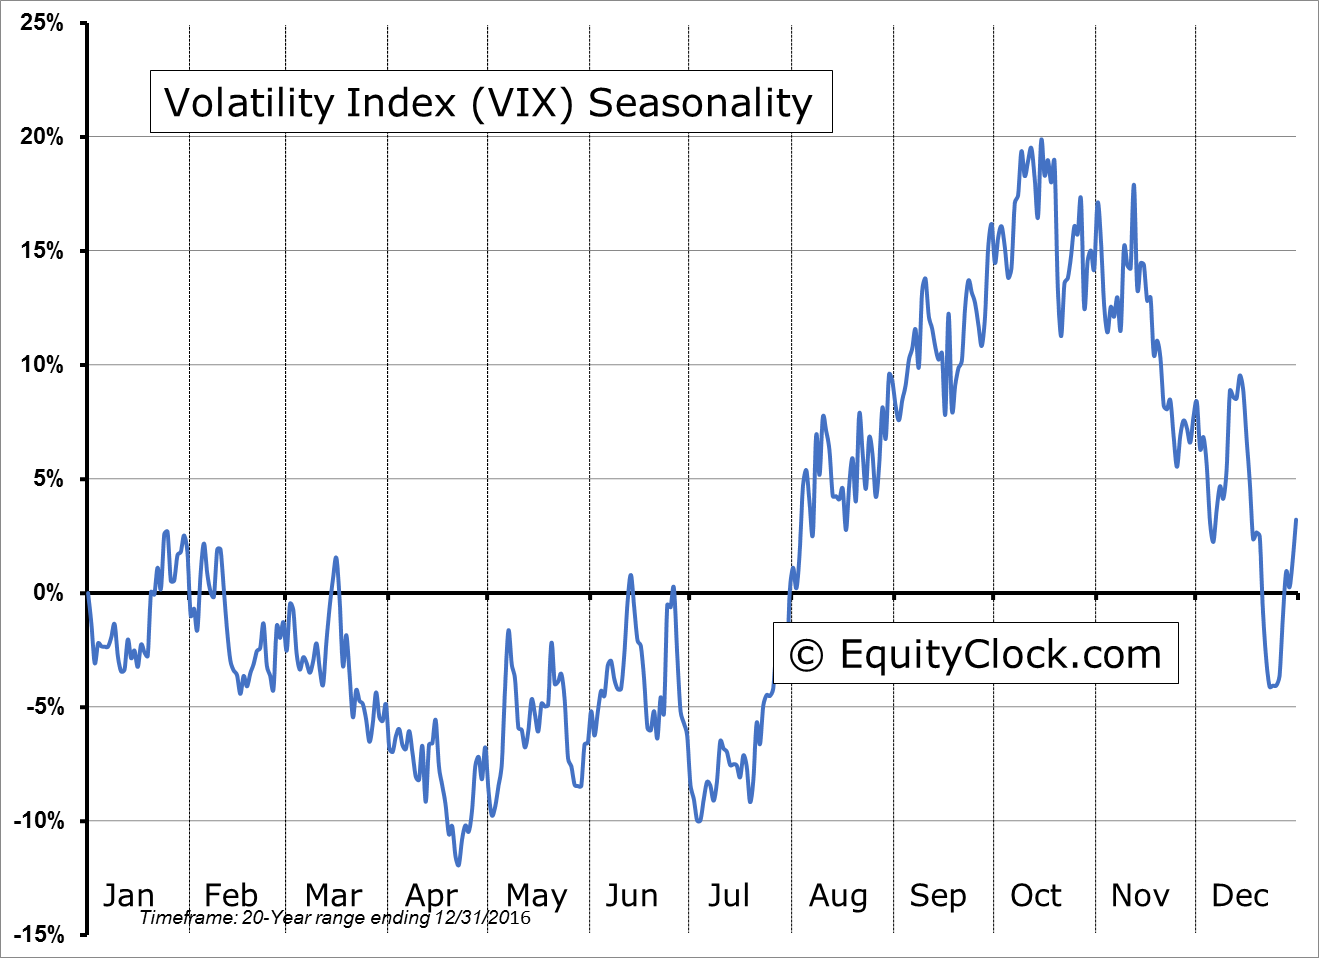 Volatility Index (VIX) Seasonality